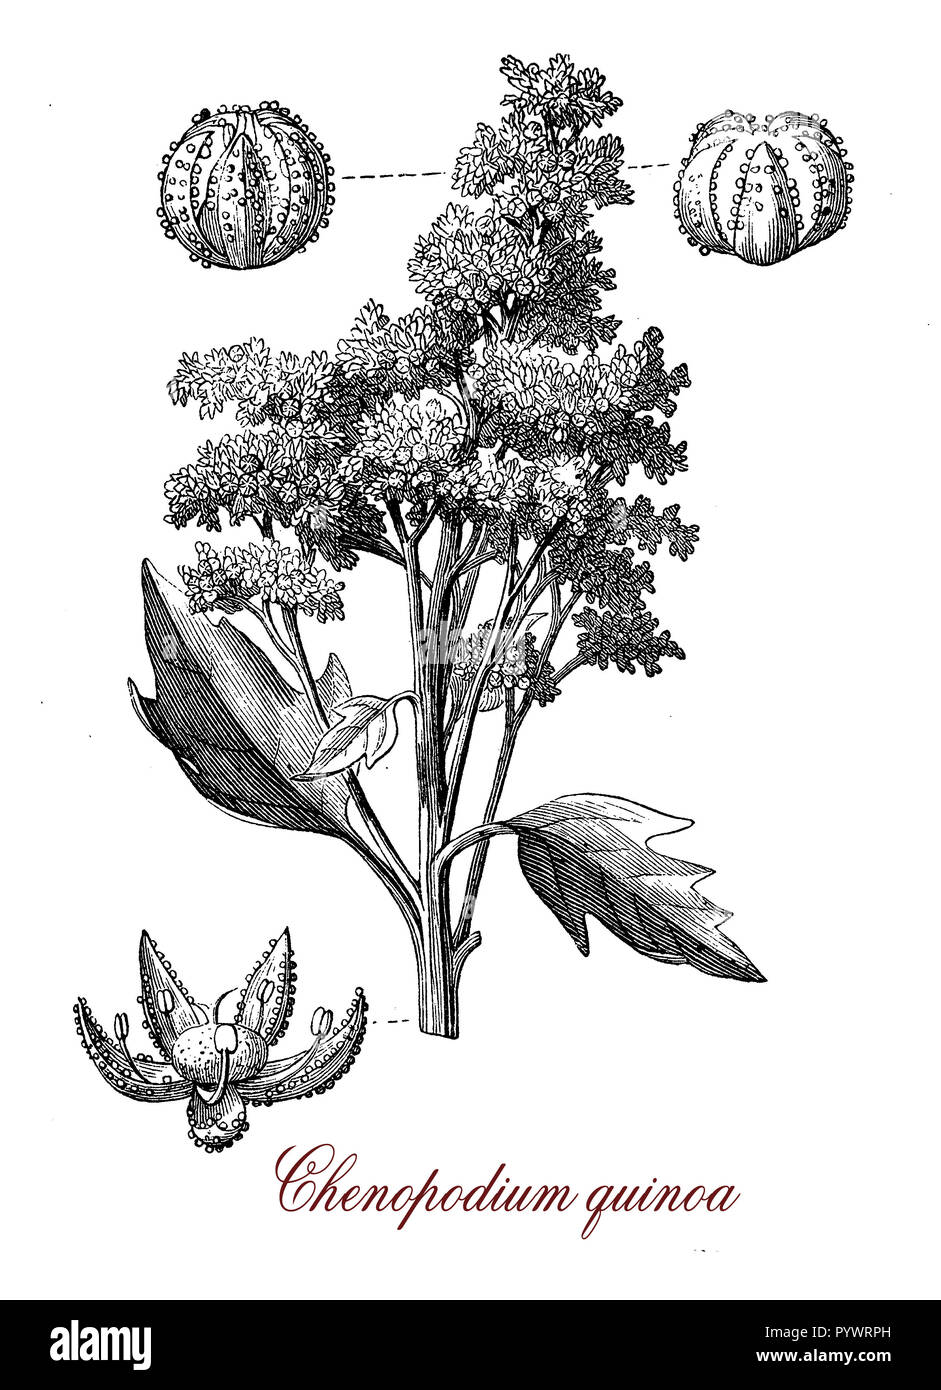 Vintage botanical engraving of  quinoa, flowering plant and grain crop with edible gluten-free  seeds rich in vitamins,fiber, protein and minerals. - Stock Image